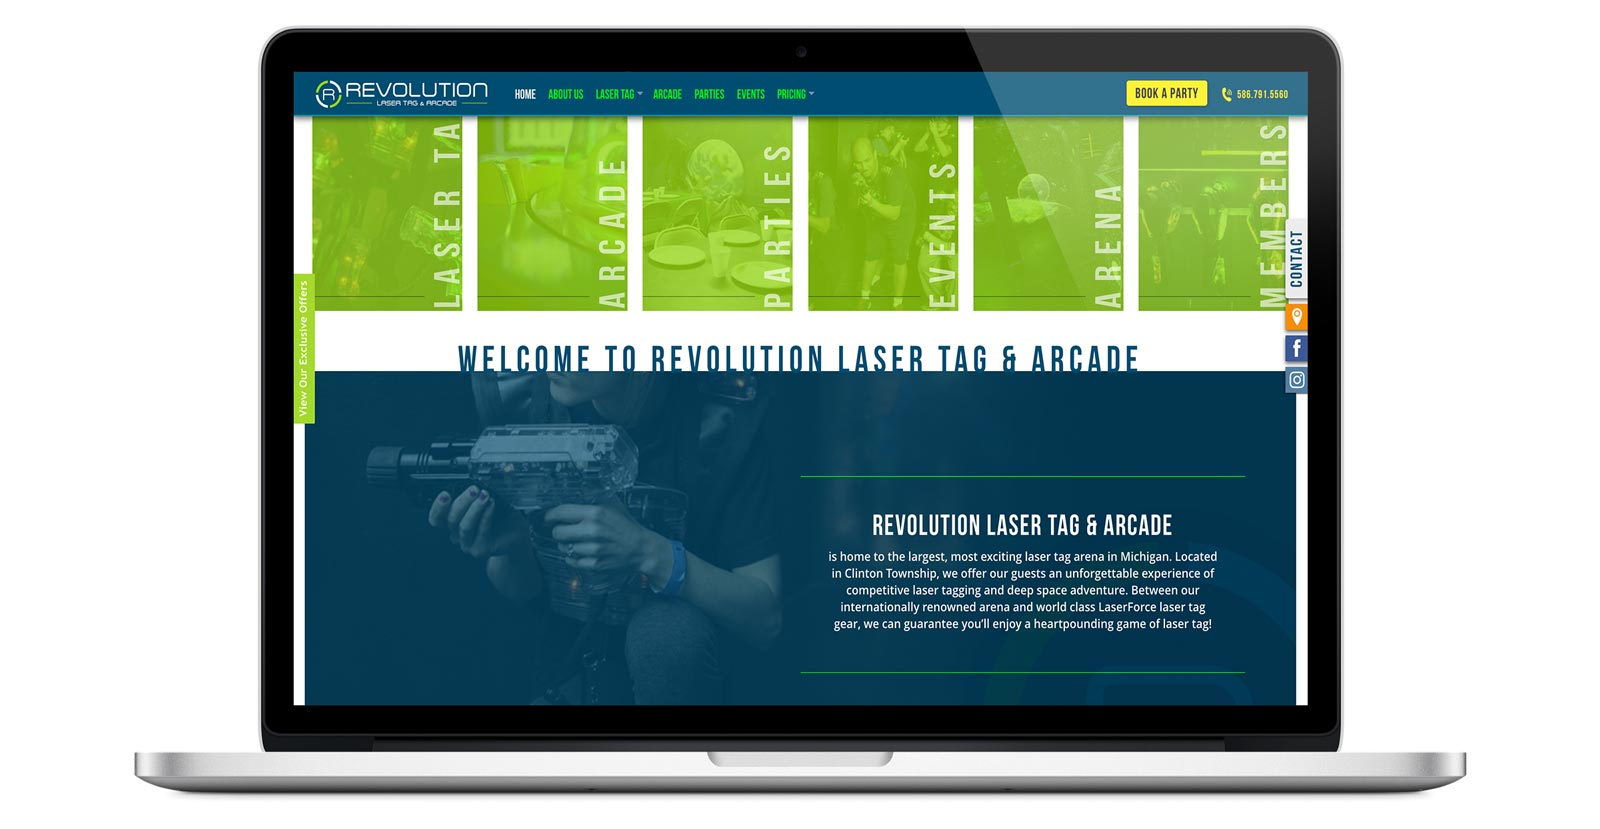 revolution laser tag website homepage image